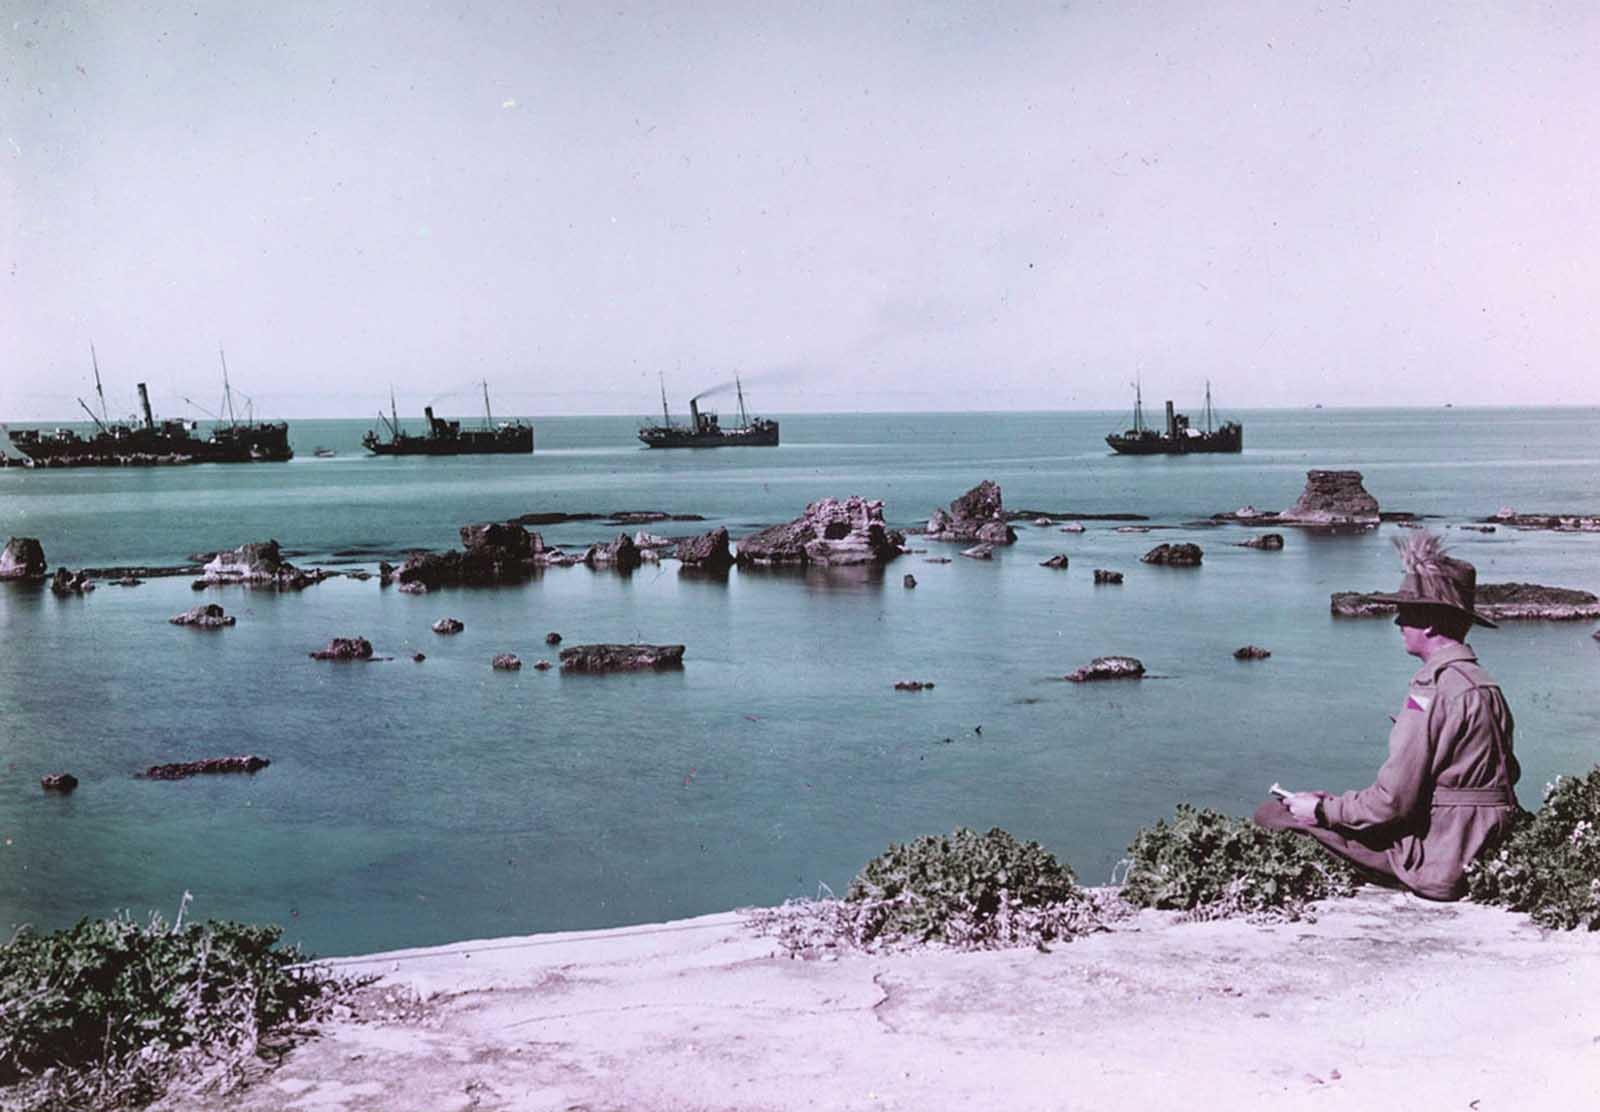 The Rocks of Andromeda, Jaffa, and transports laden with war supplies headed out to sea in 1918. This image was taken using the Paget process, an early experiment in color photography.